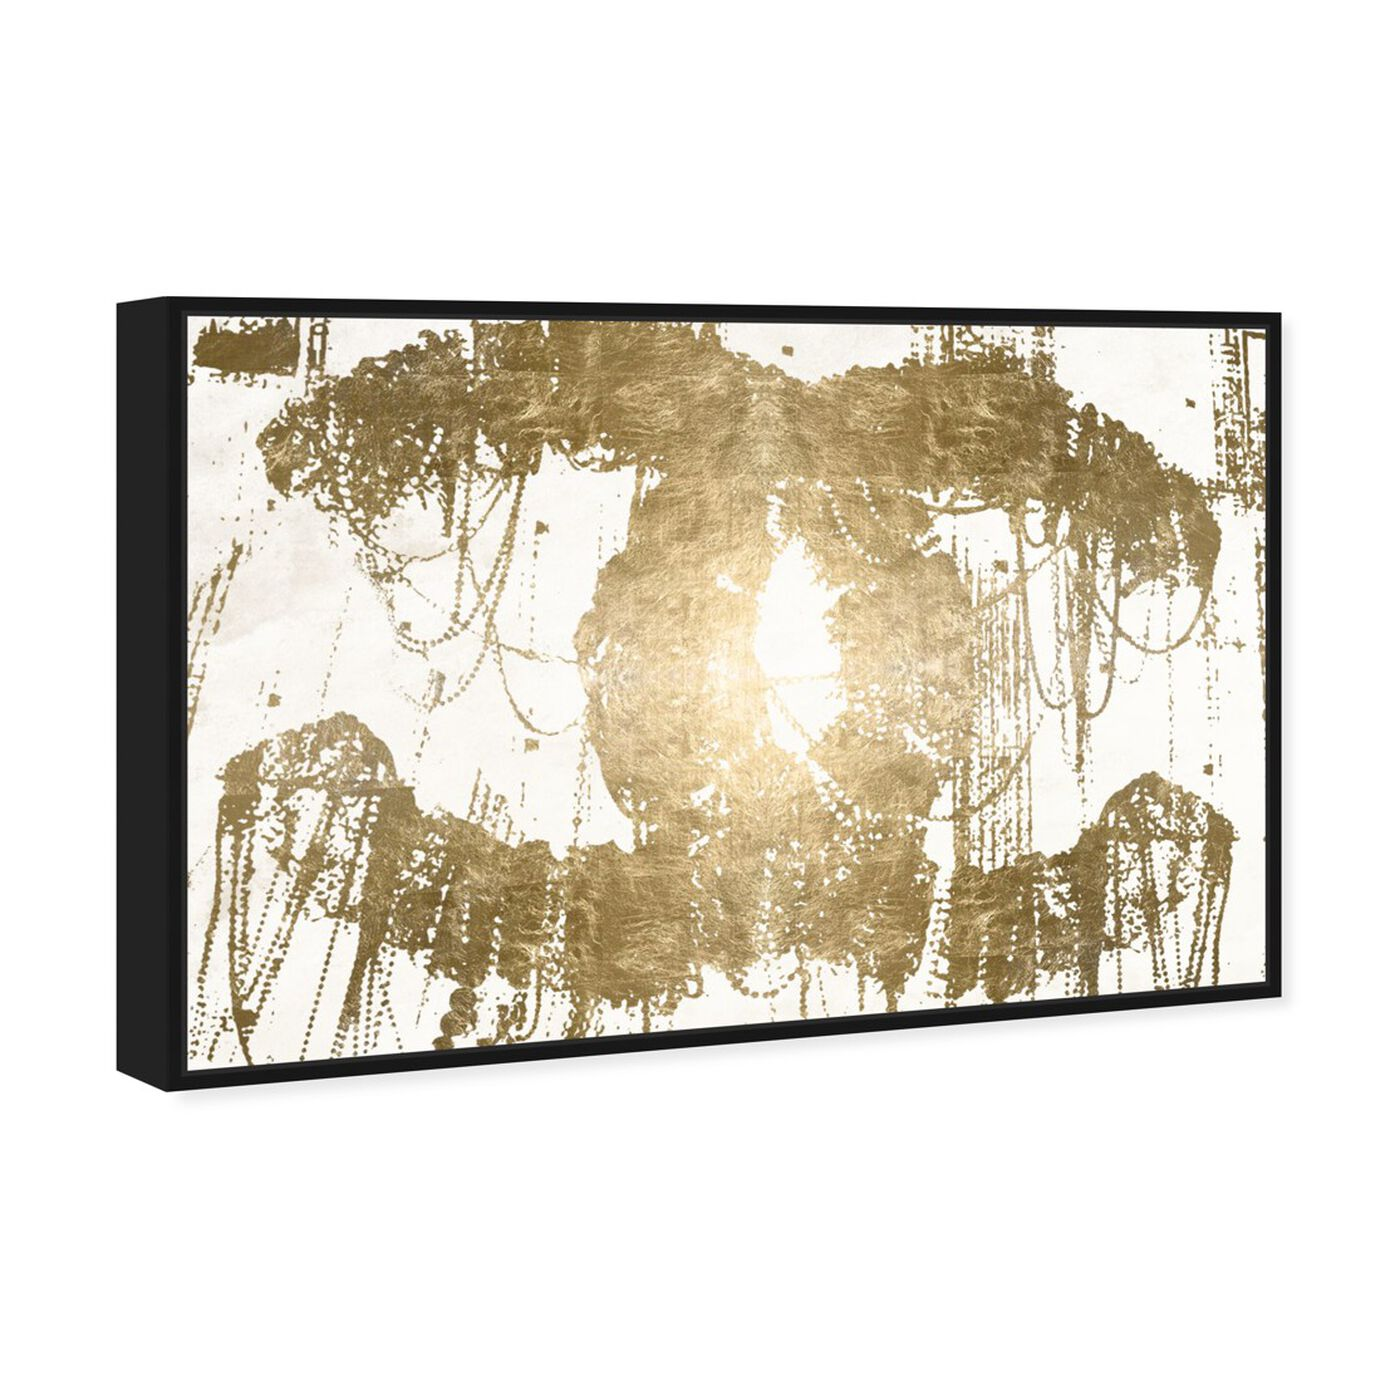 Angled view of Hey Lolita Gold Canvas featuring fashion and glam and road signs art.